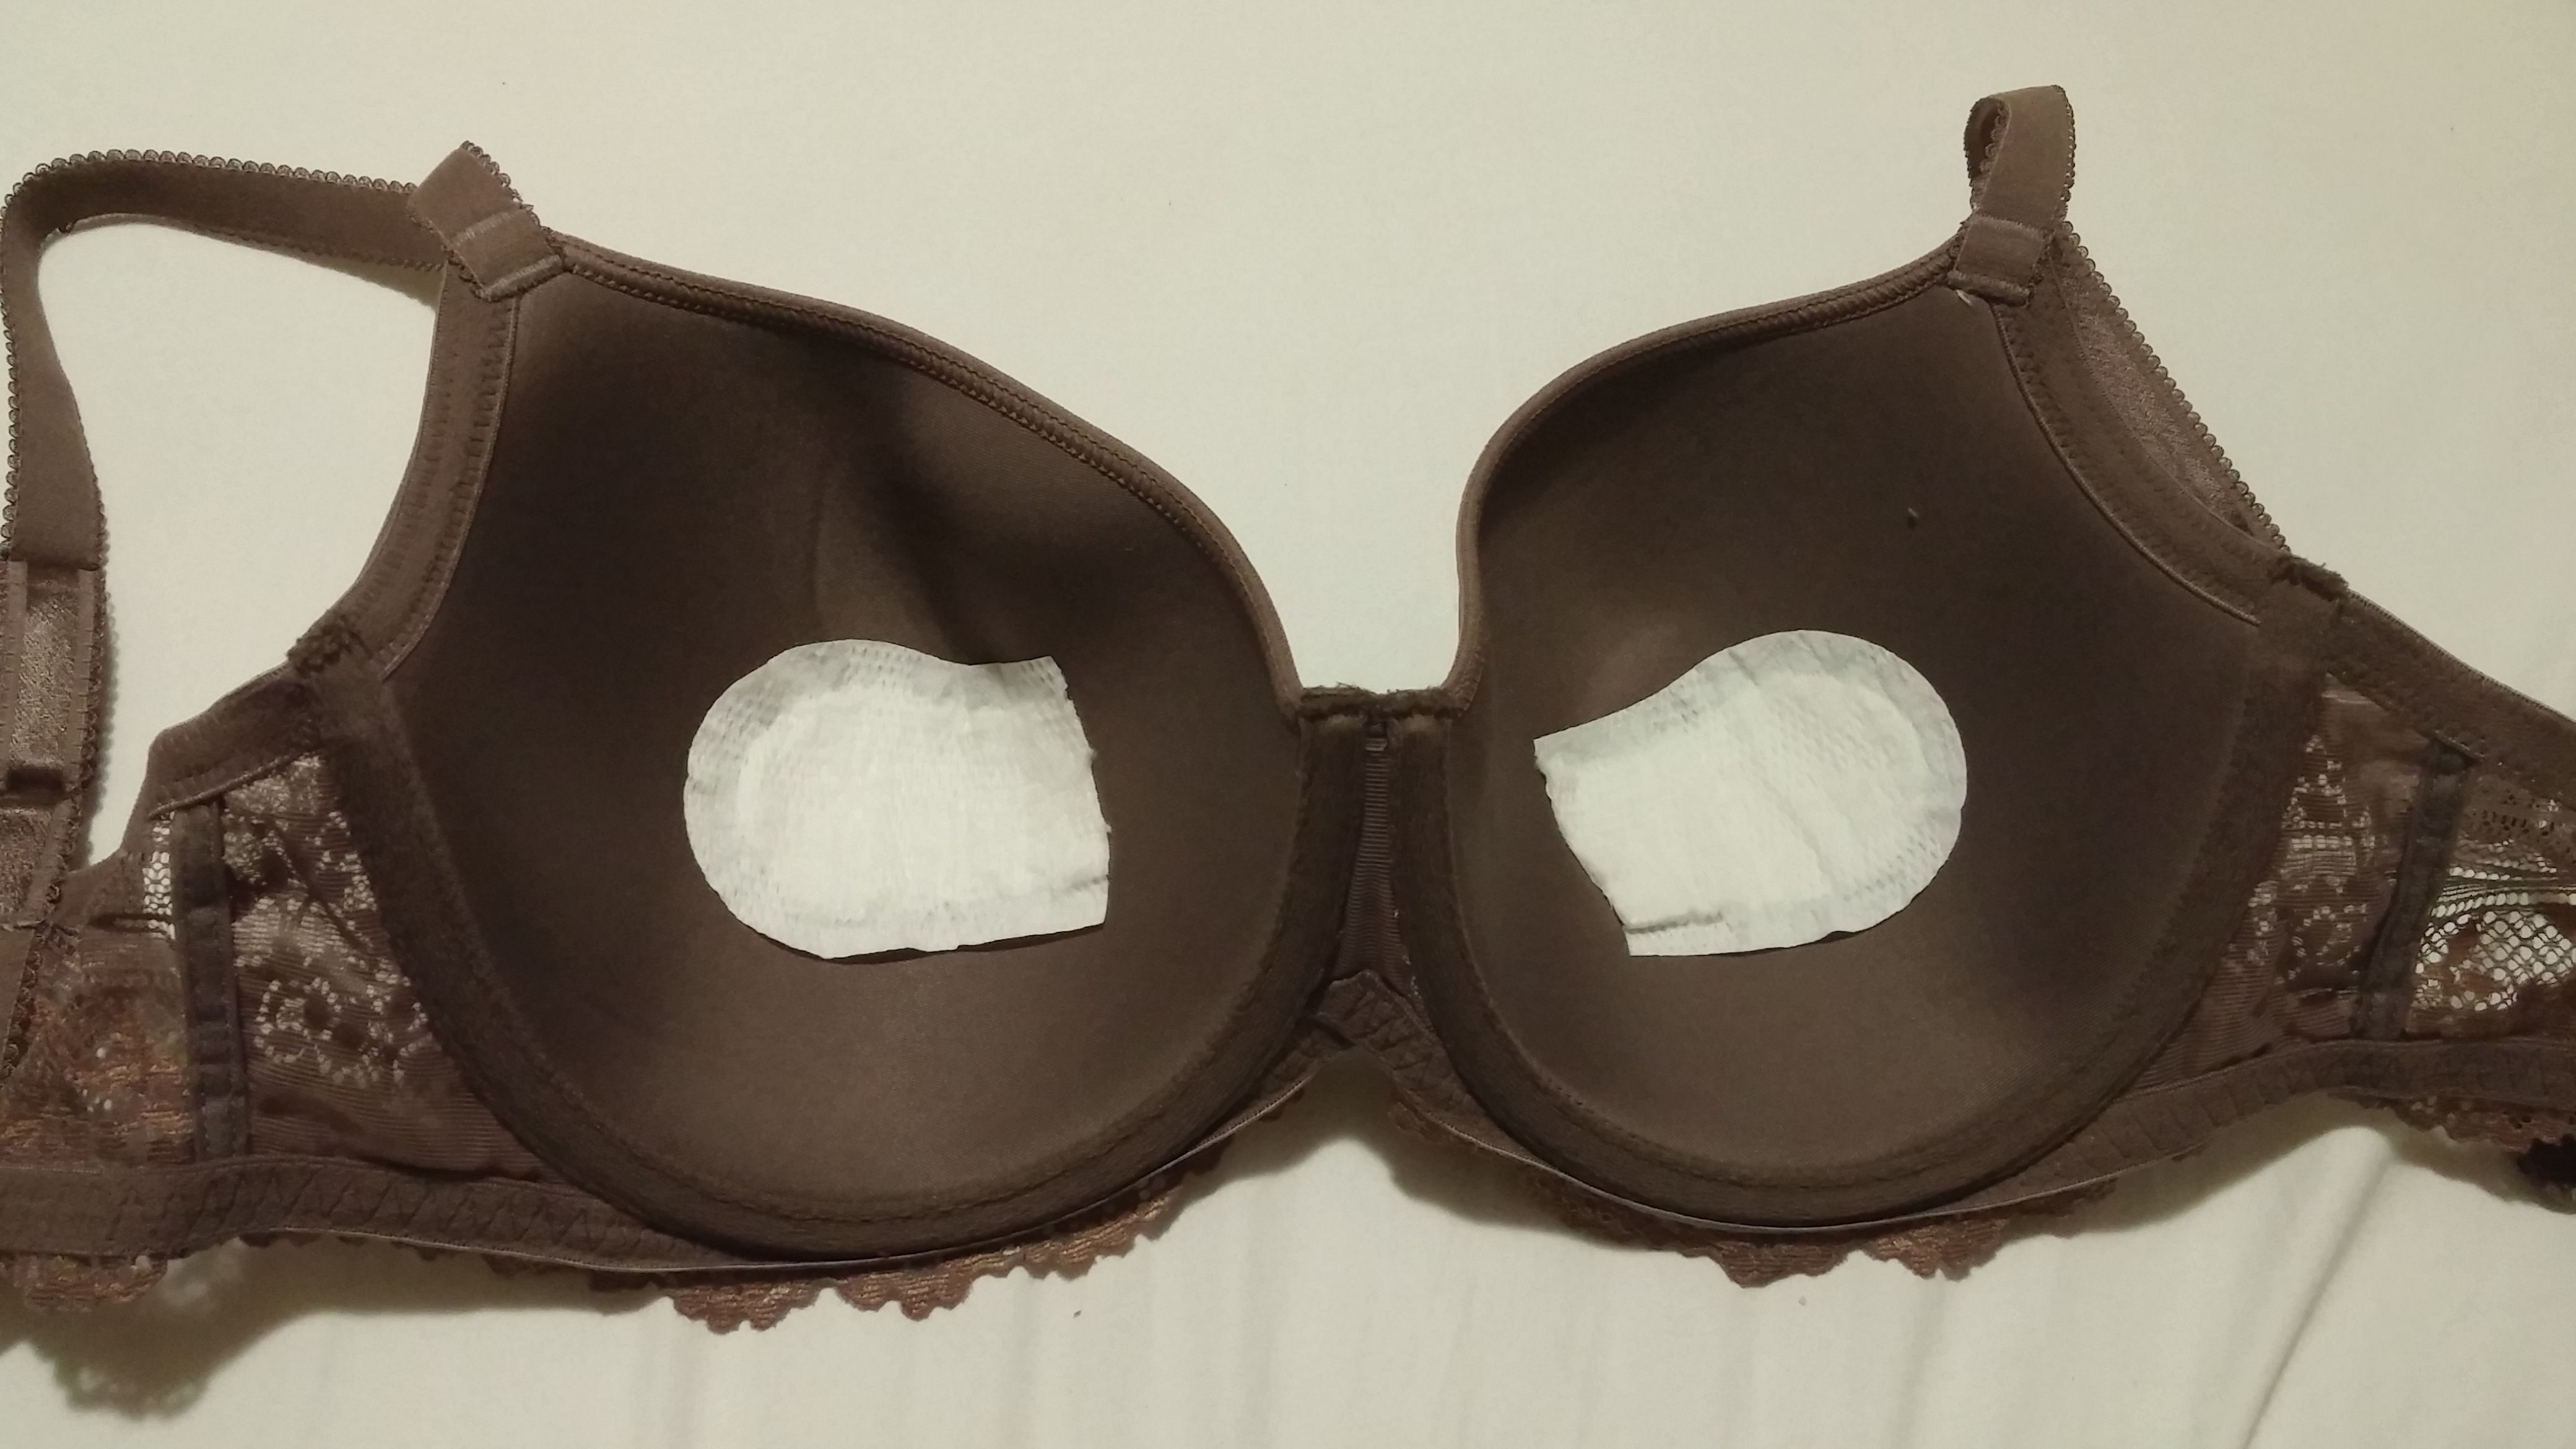 Use a pad or pantyliner inside your bra for leaking breast milk.